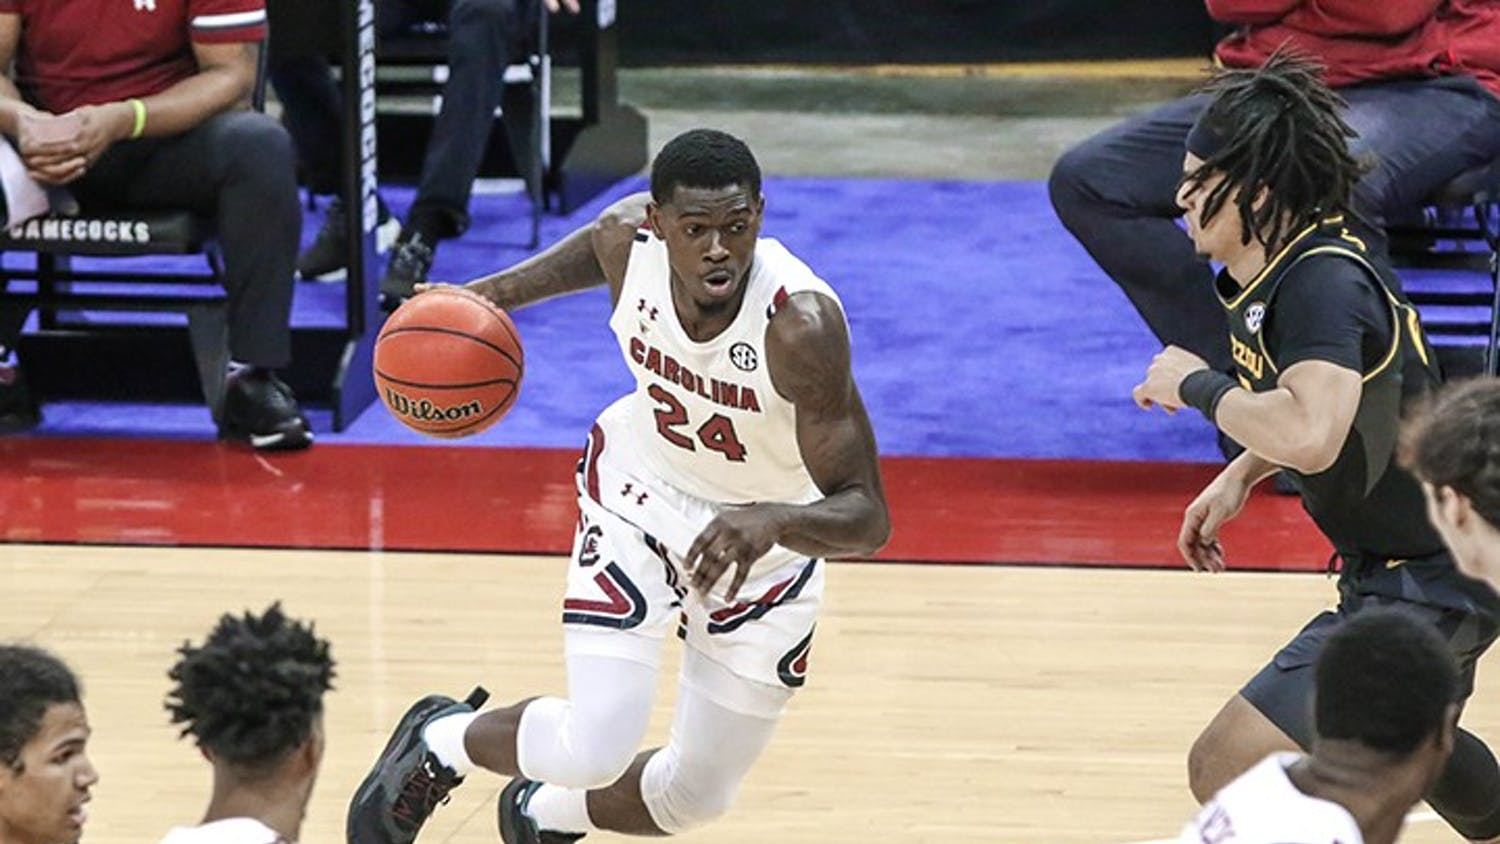 Junior forward Keyshawn Bryant dribbles the ball in the game against Missouri. South Carolina lost, 93-78.